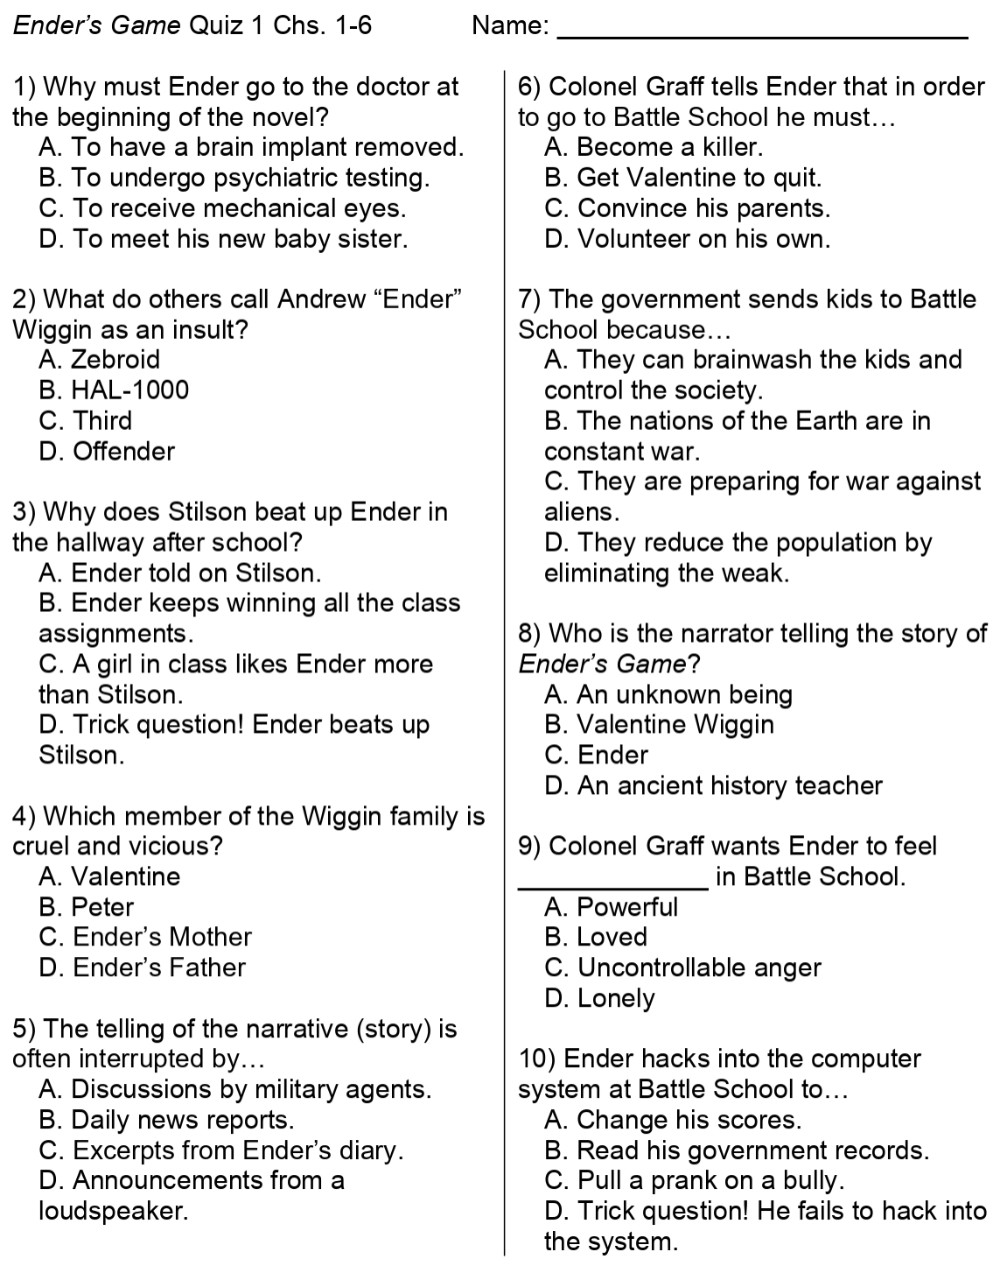 Ender's Game Comprehension Questions page 1